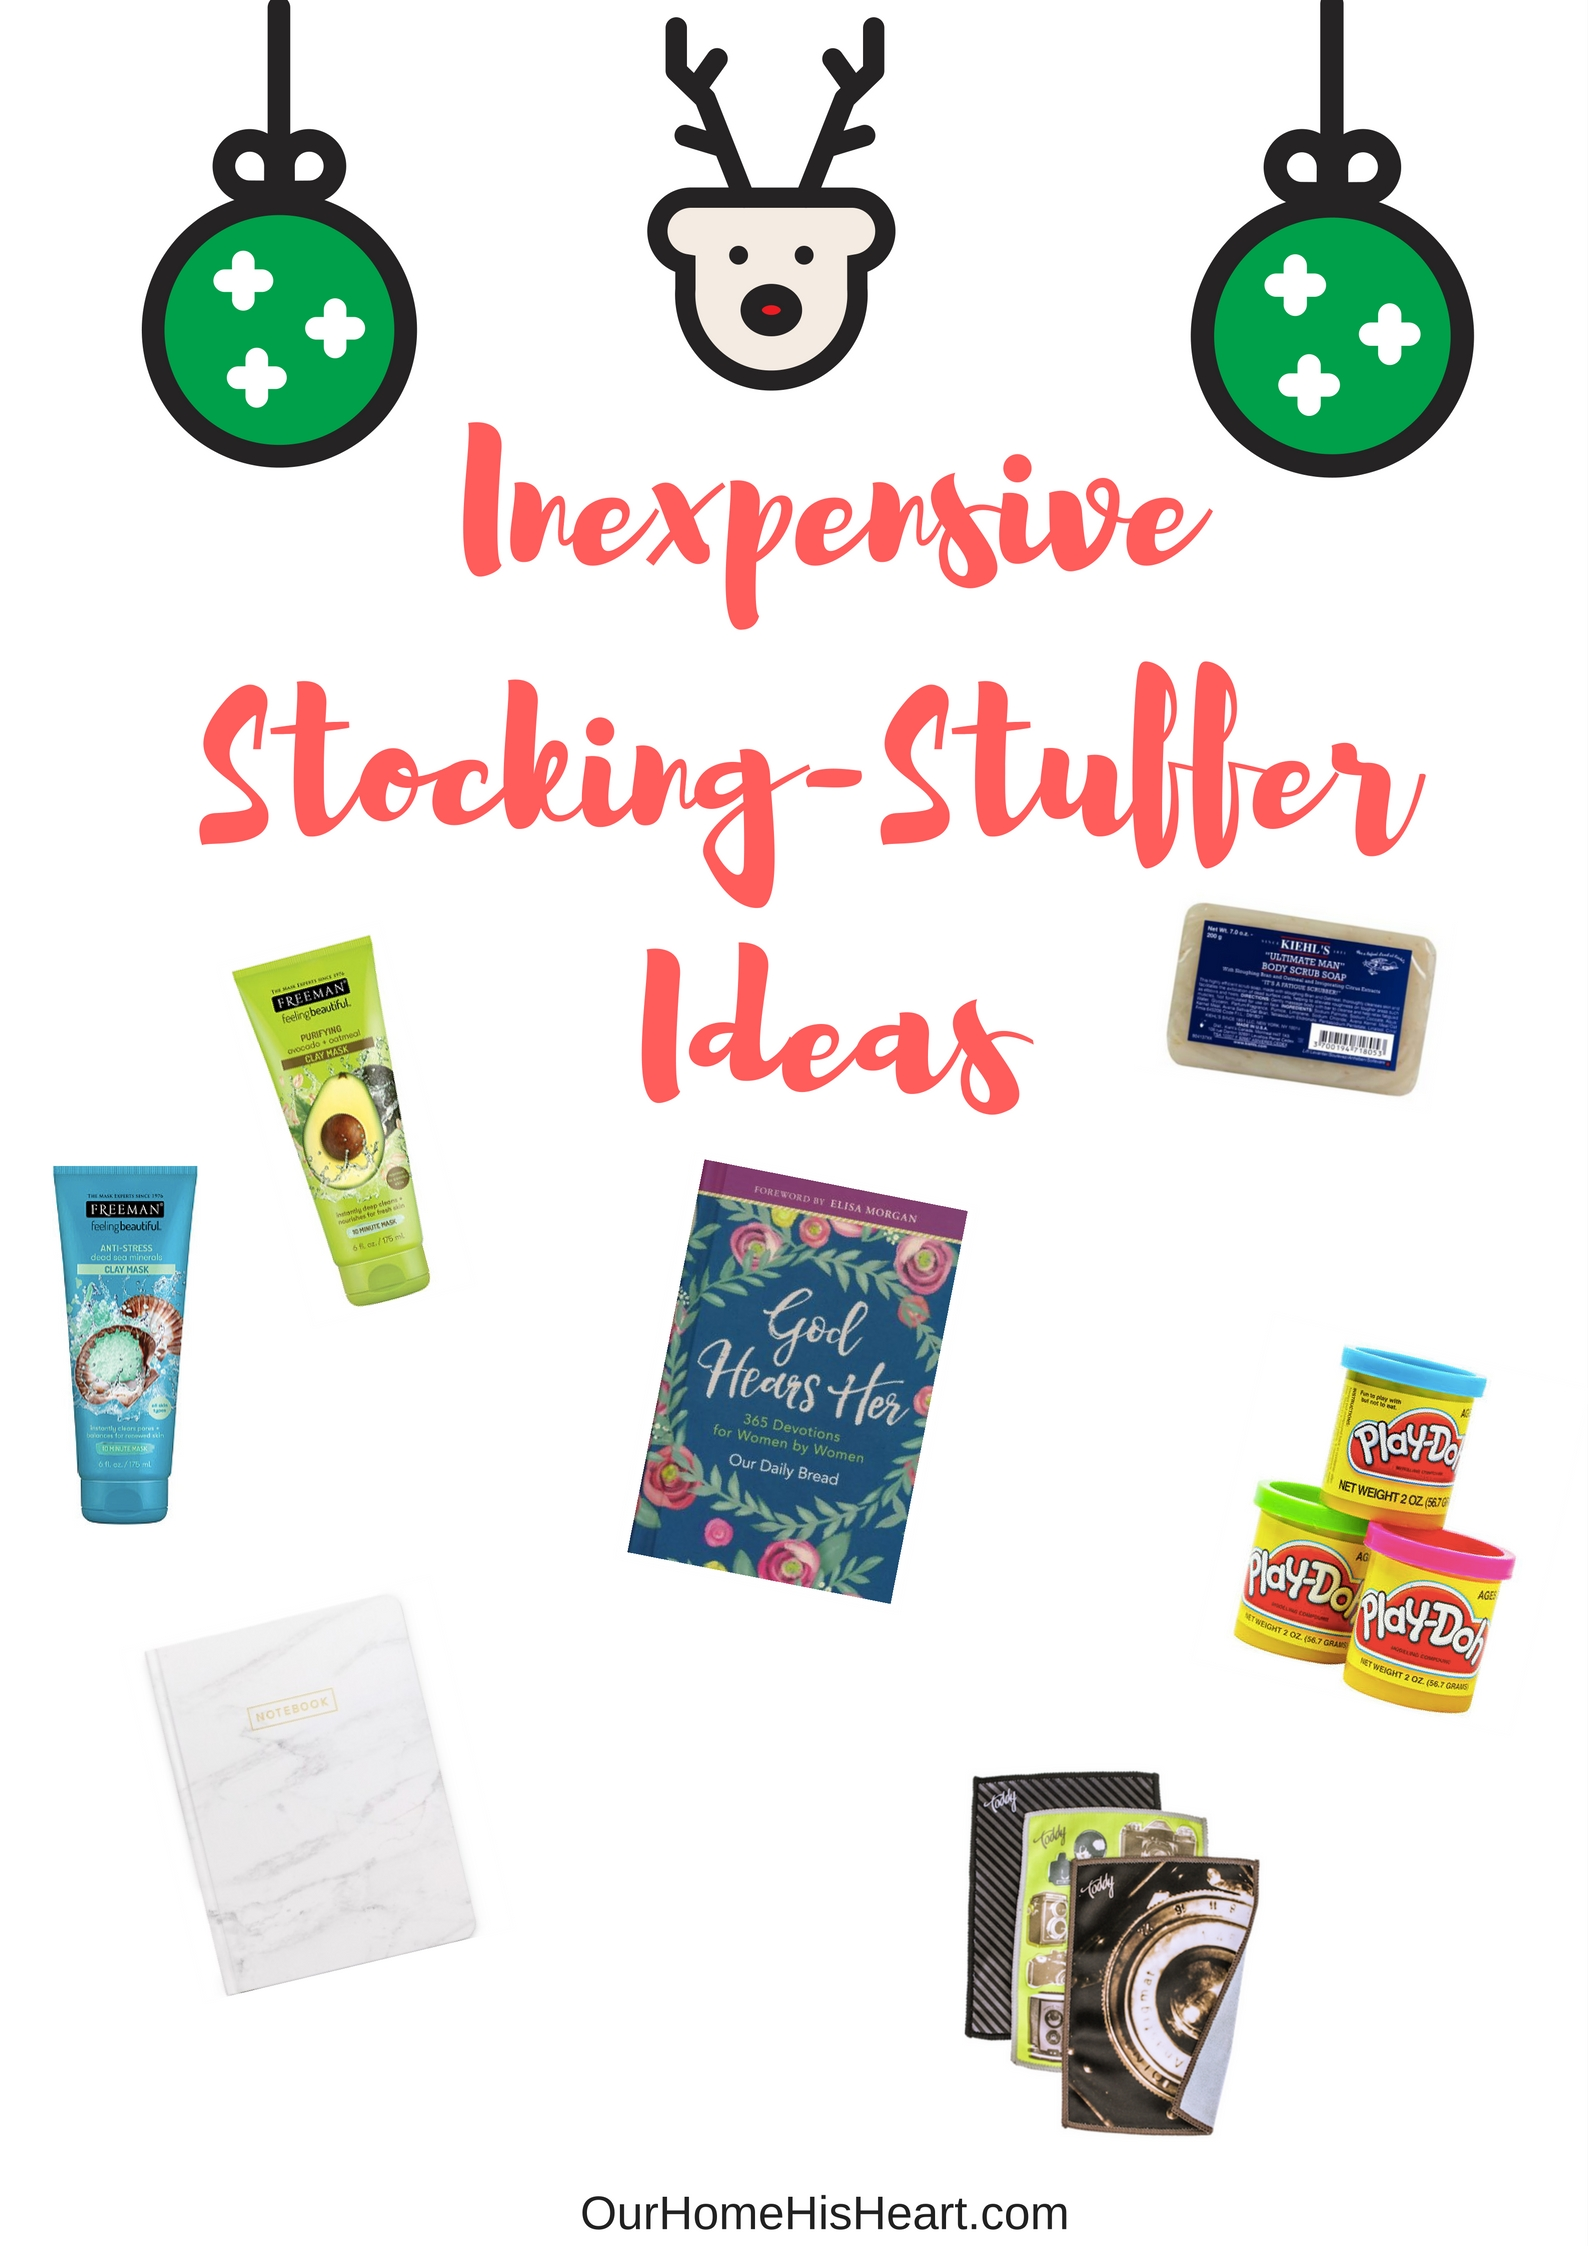 Inexpensive Stocking Stuffer Ideas